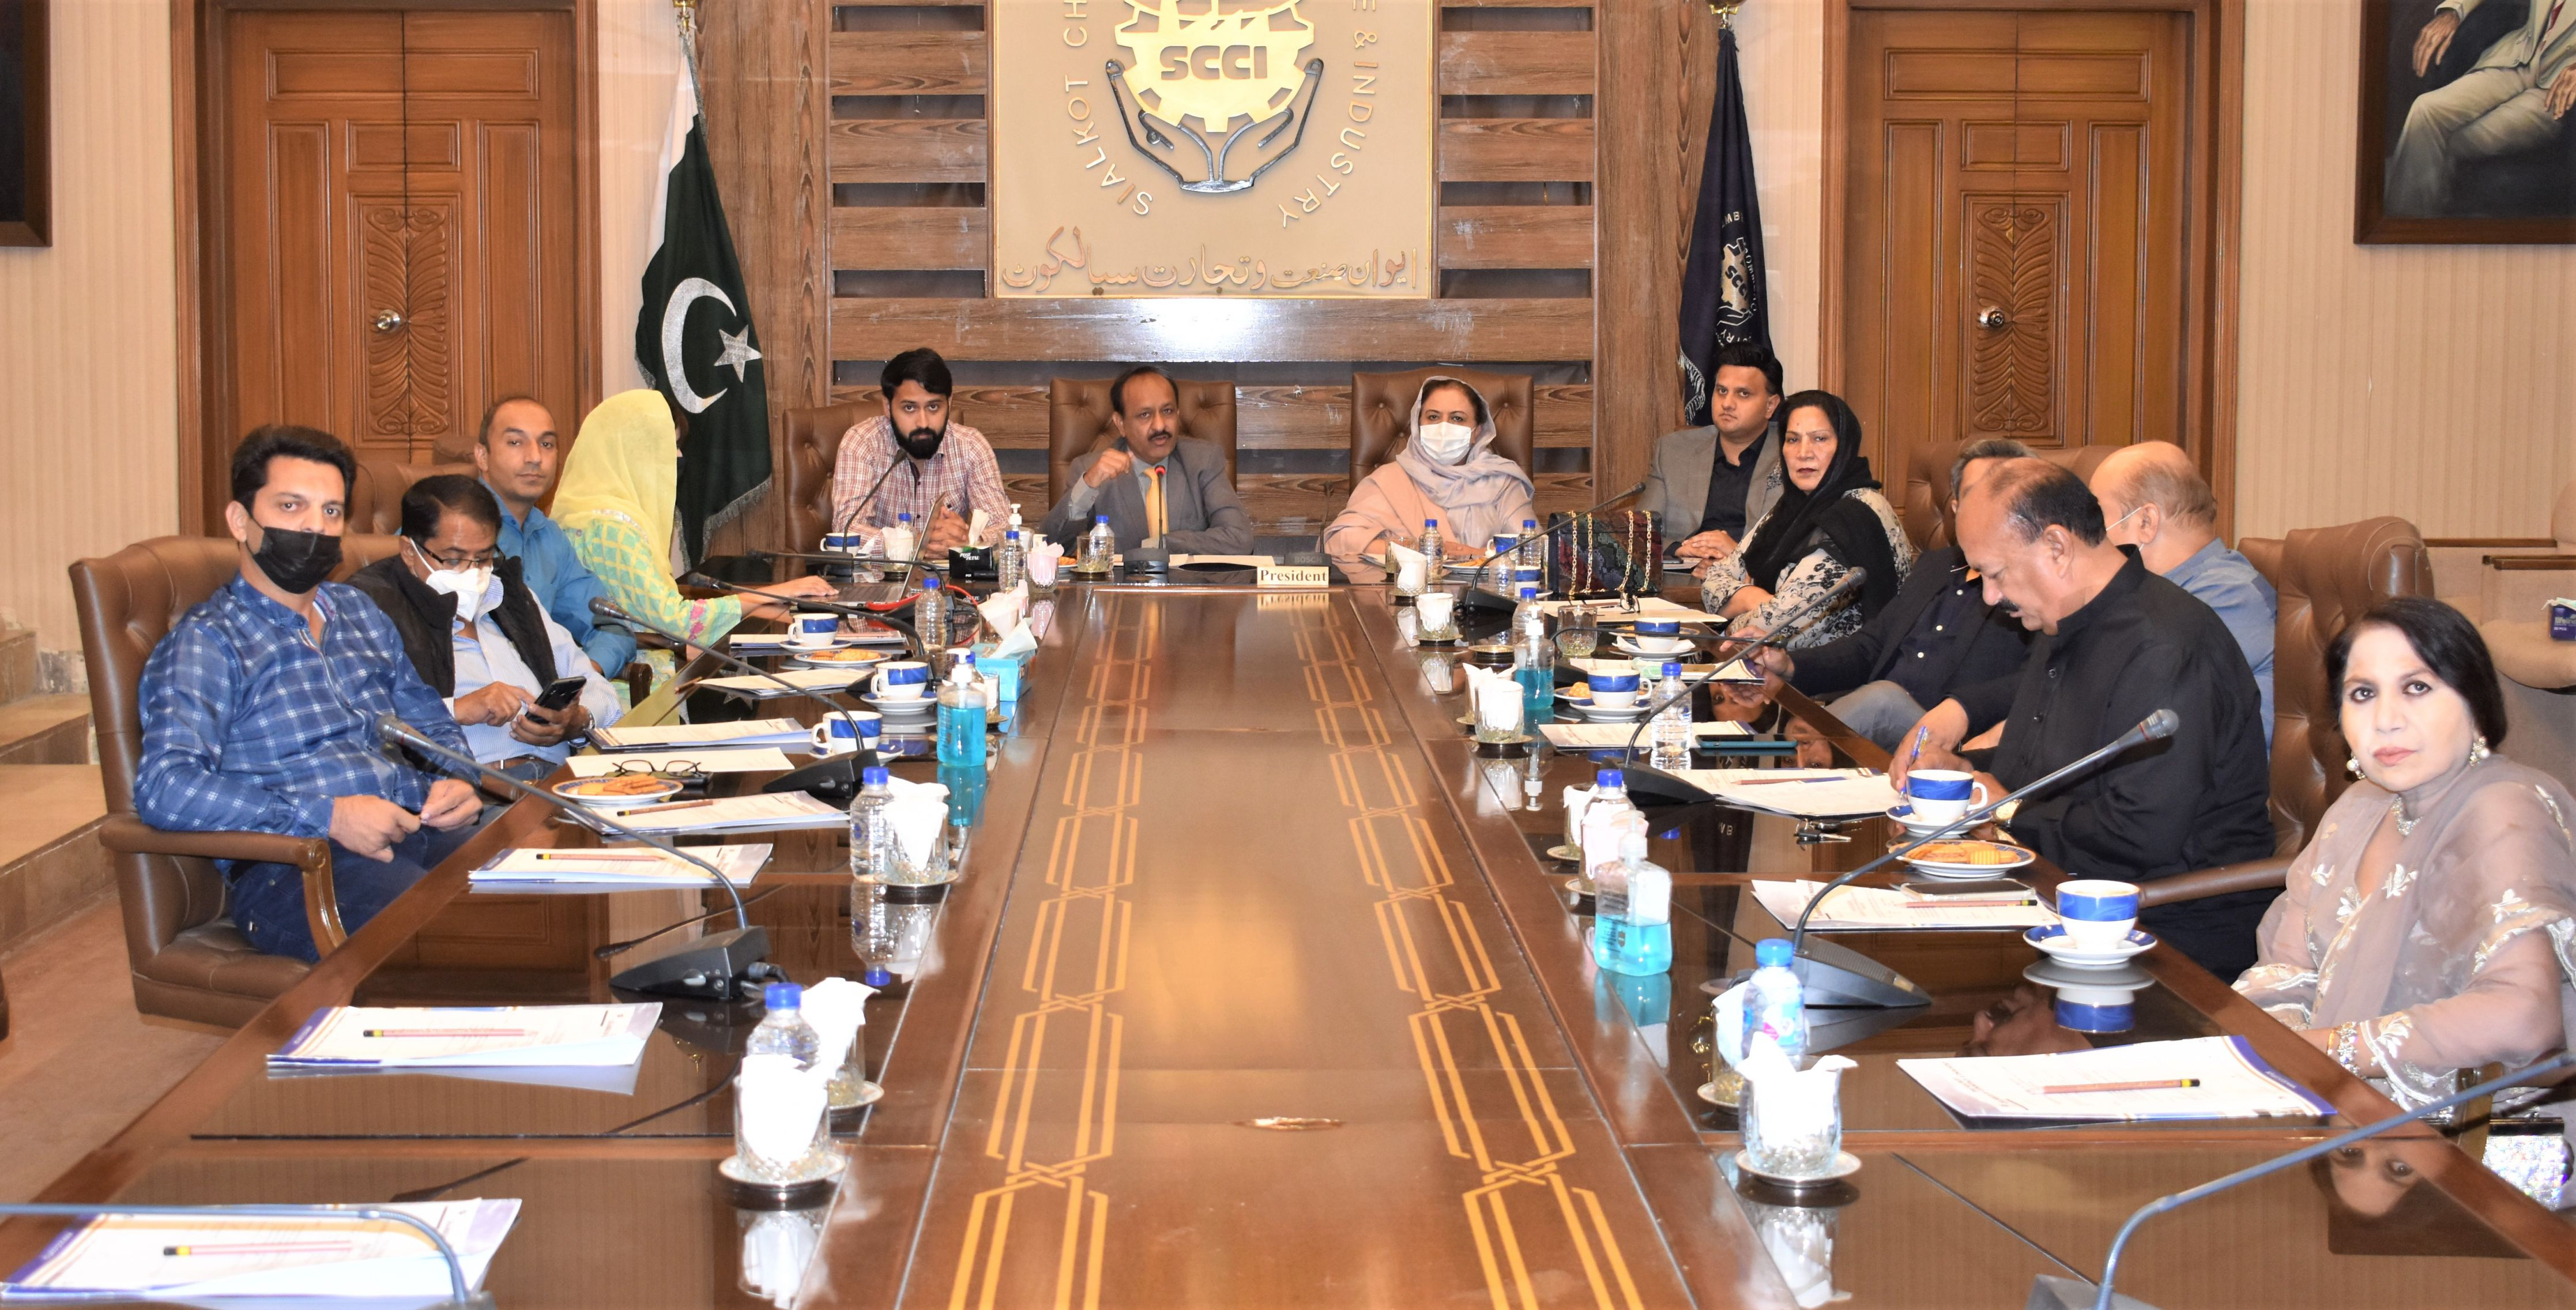 On October 23, 2021, Departmental Committee on Garrison HQ/ Cantonment Board Affairs held its 1st meeting of the Tenure 2021-22. Mr. Sheikh Zahid Hameed, Chairman, Cantonment Committee gave a presentation on projects initiated by the Cantonment committee to facilitate the Community and SCCI Members. Discussion was held to complete the existing projects as well as to take some new steps for further developments under the scope of this committee.